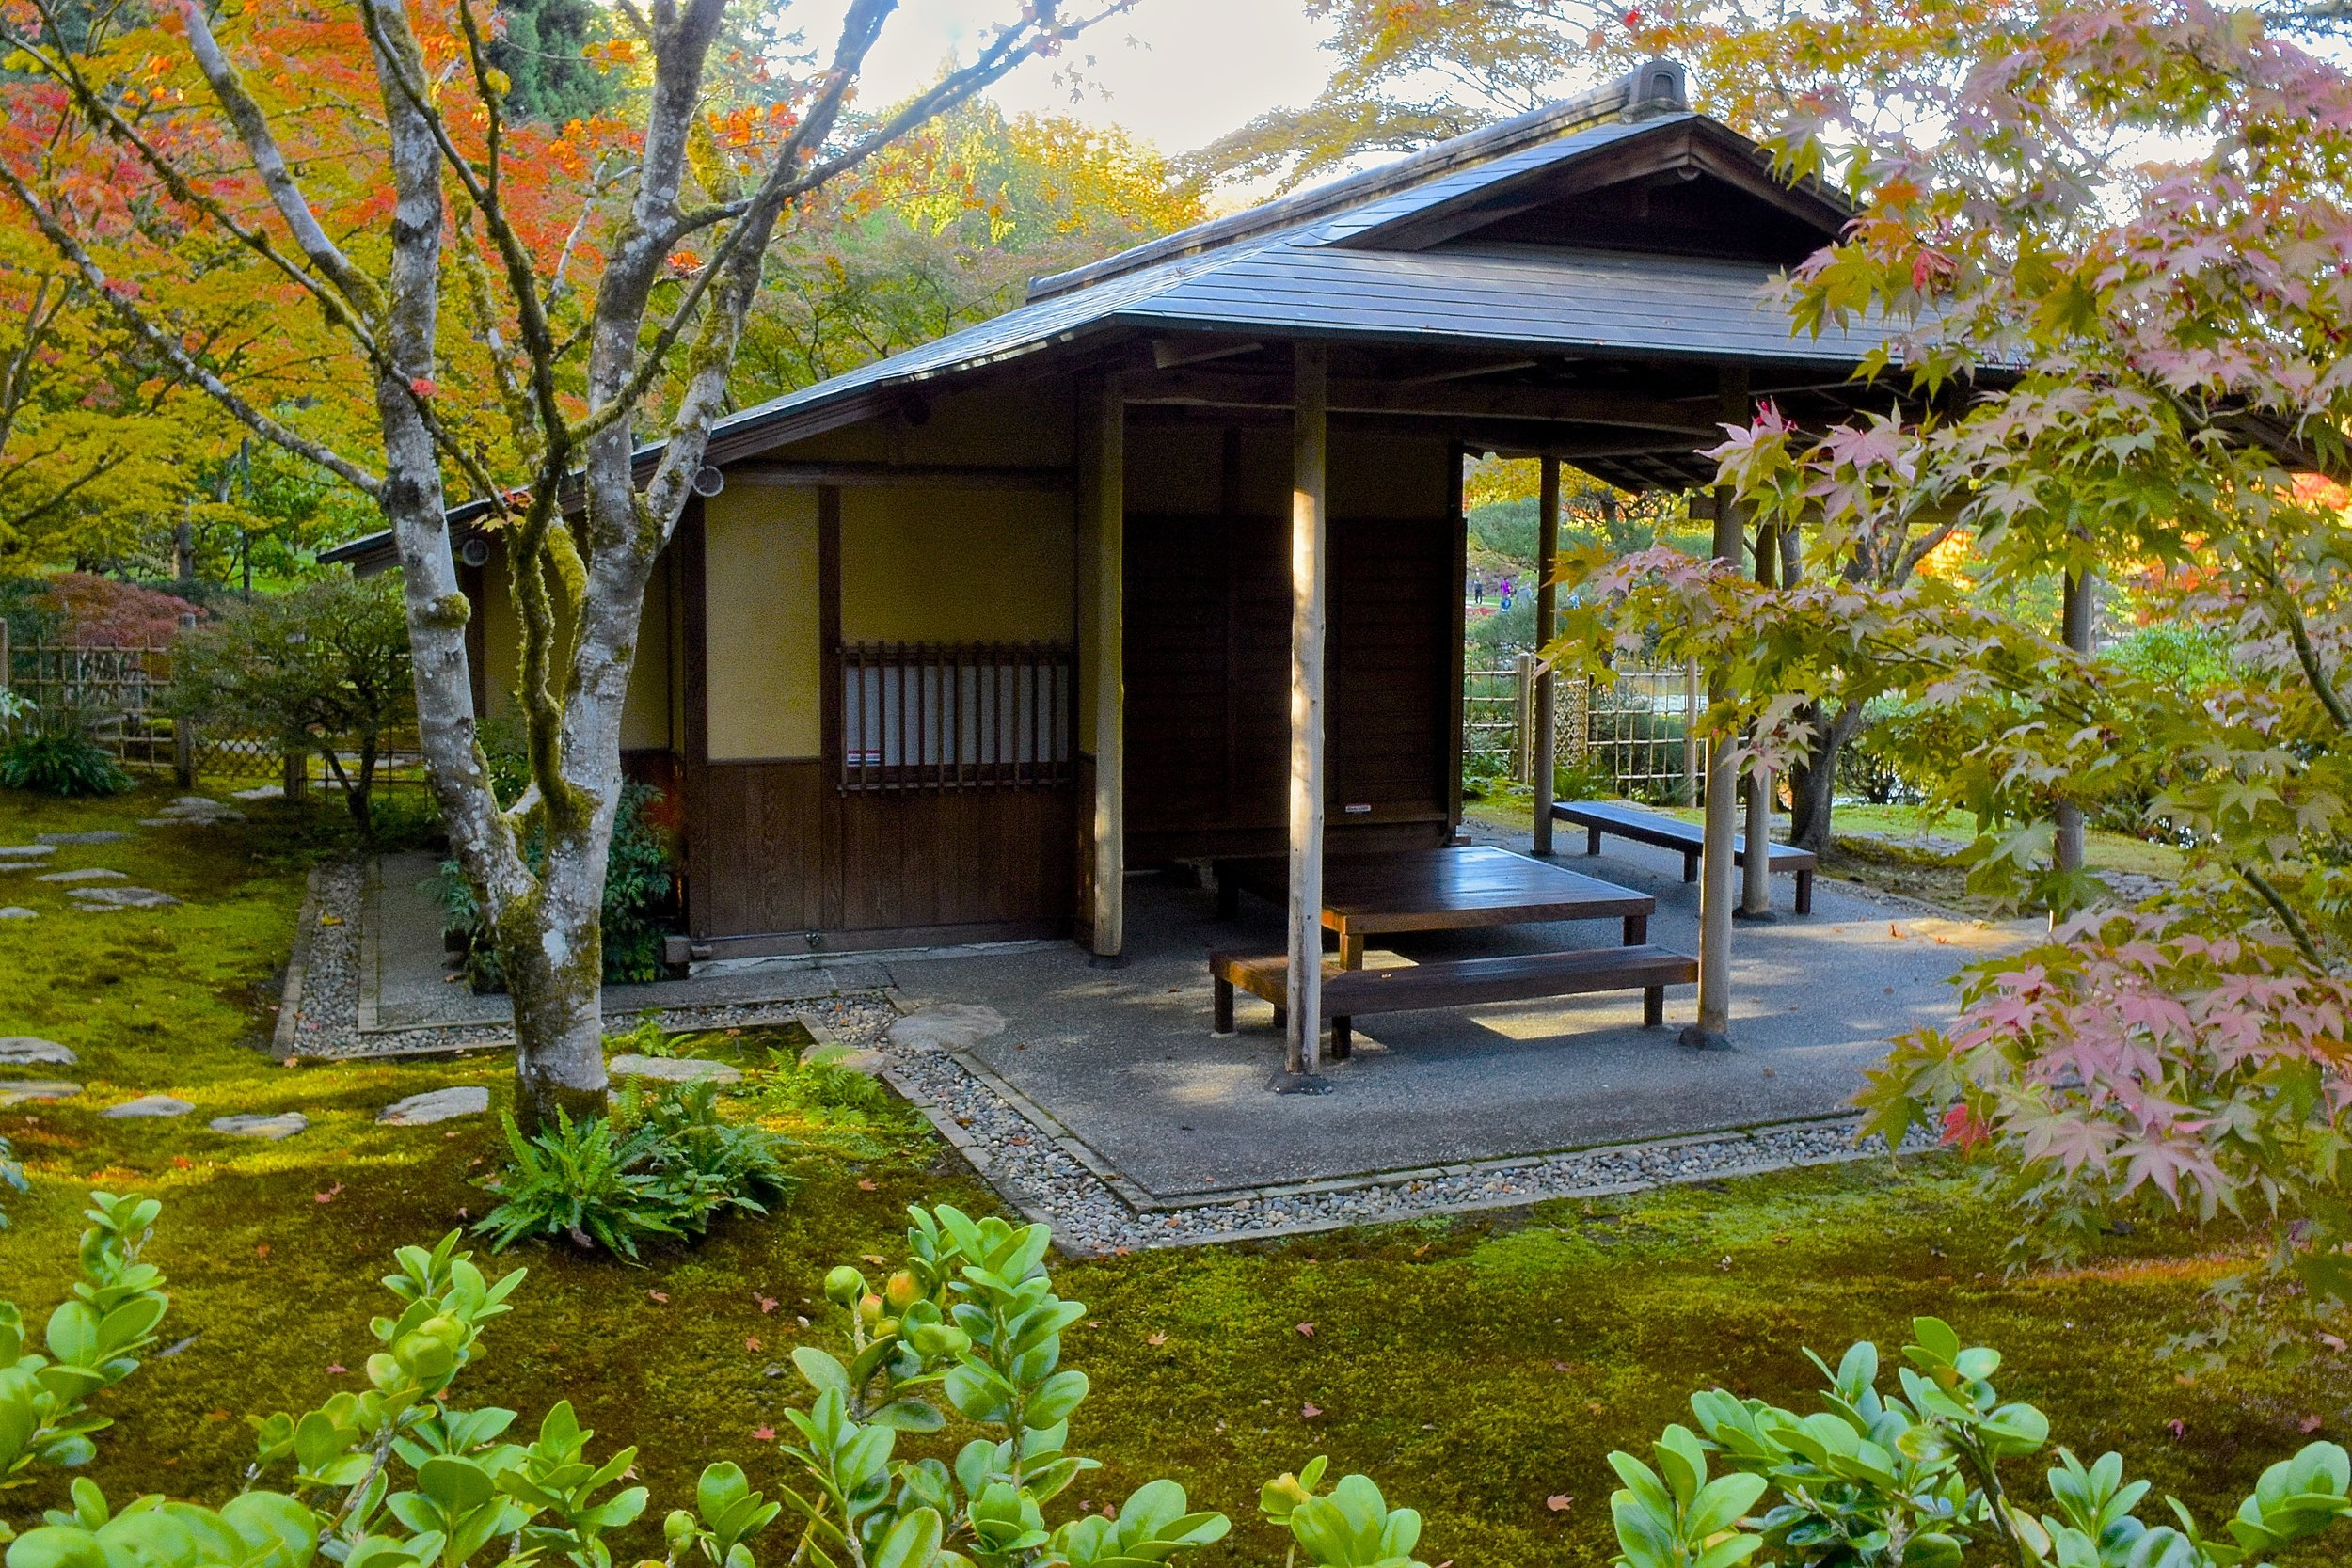 """The Seattle Japanese Garden teahouse,  Shoseian  (translated as """"Arbor of the Murmuring Pines"""") and its inner garden. With the green simplicity of its moss and other plantings, the garden exemplifies Juki Iida's naturalistic designs. (photo: Aurora Santiago)"""